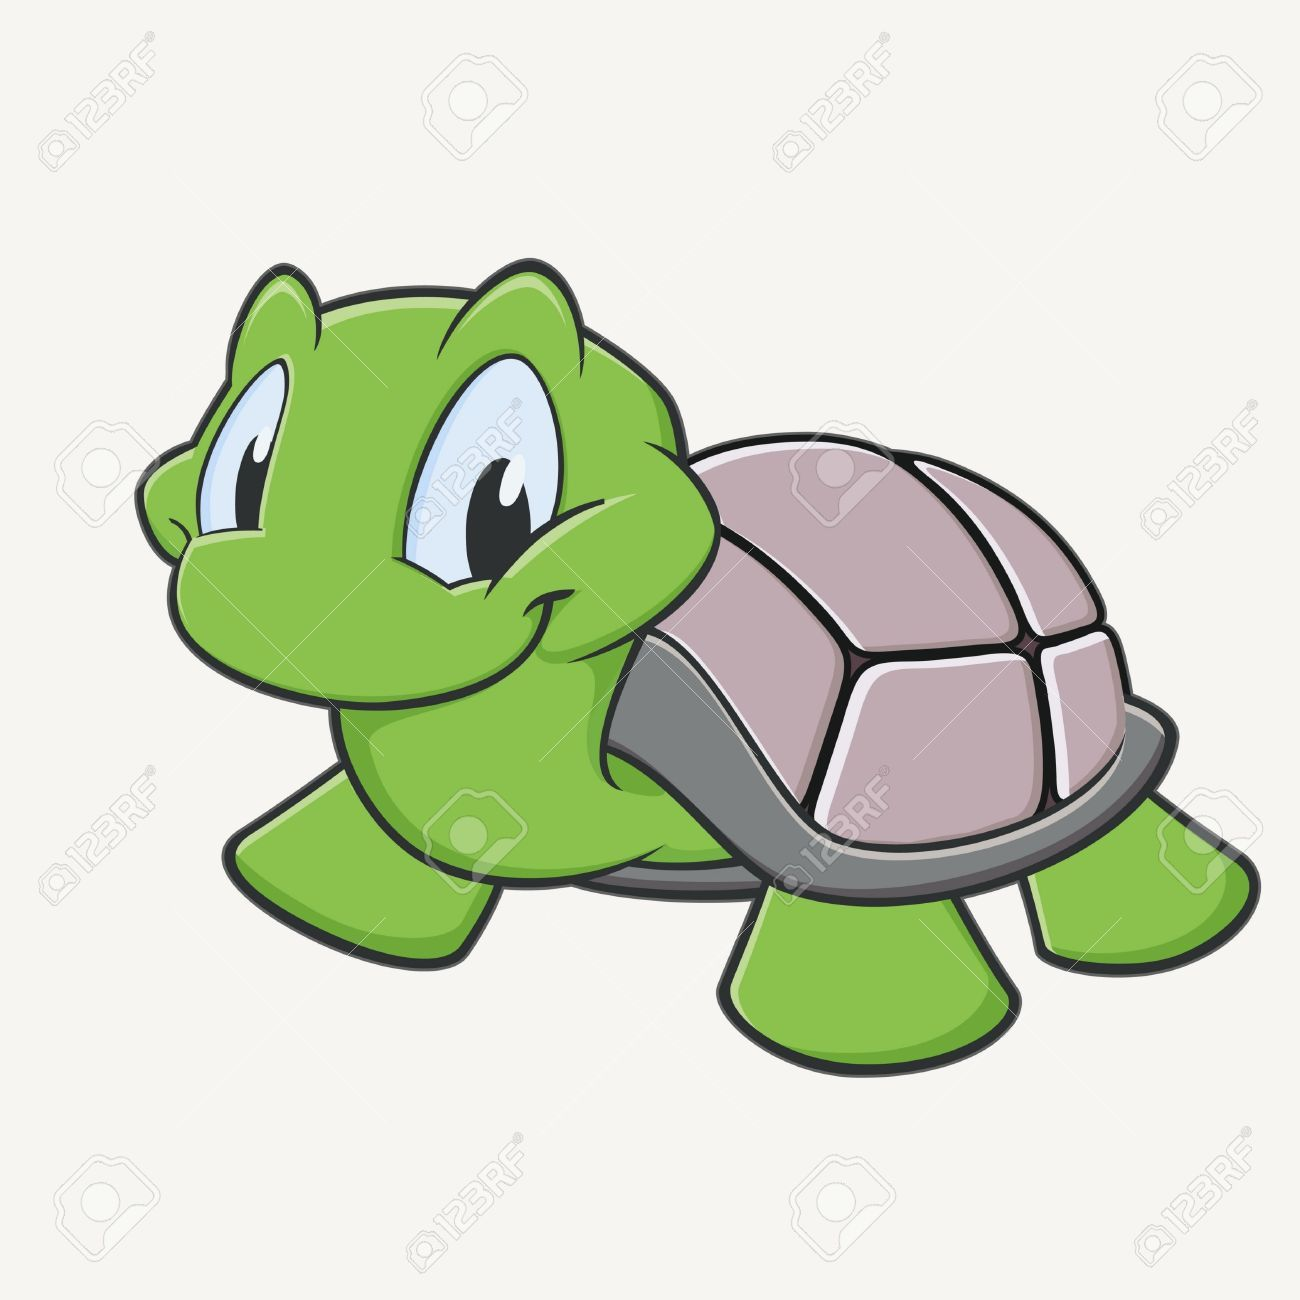 Vector Illustration Of A Cutely Smiling Cartoon Turtle Royalty Free ...